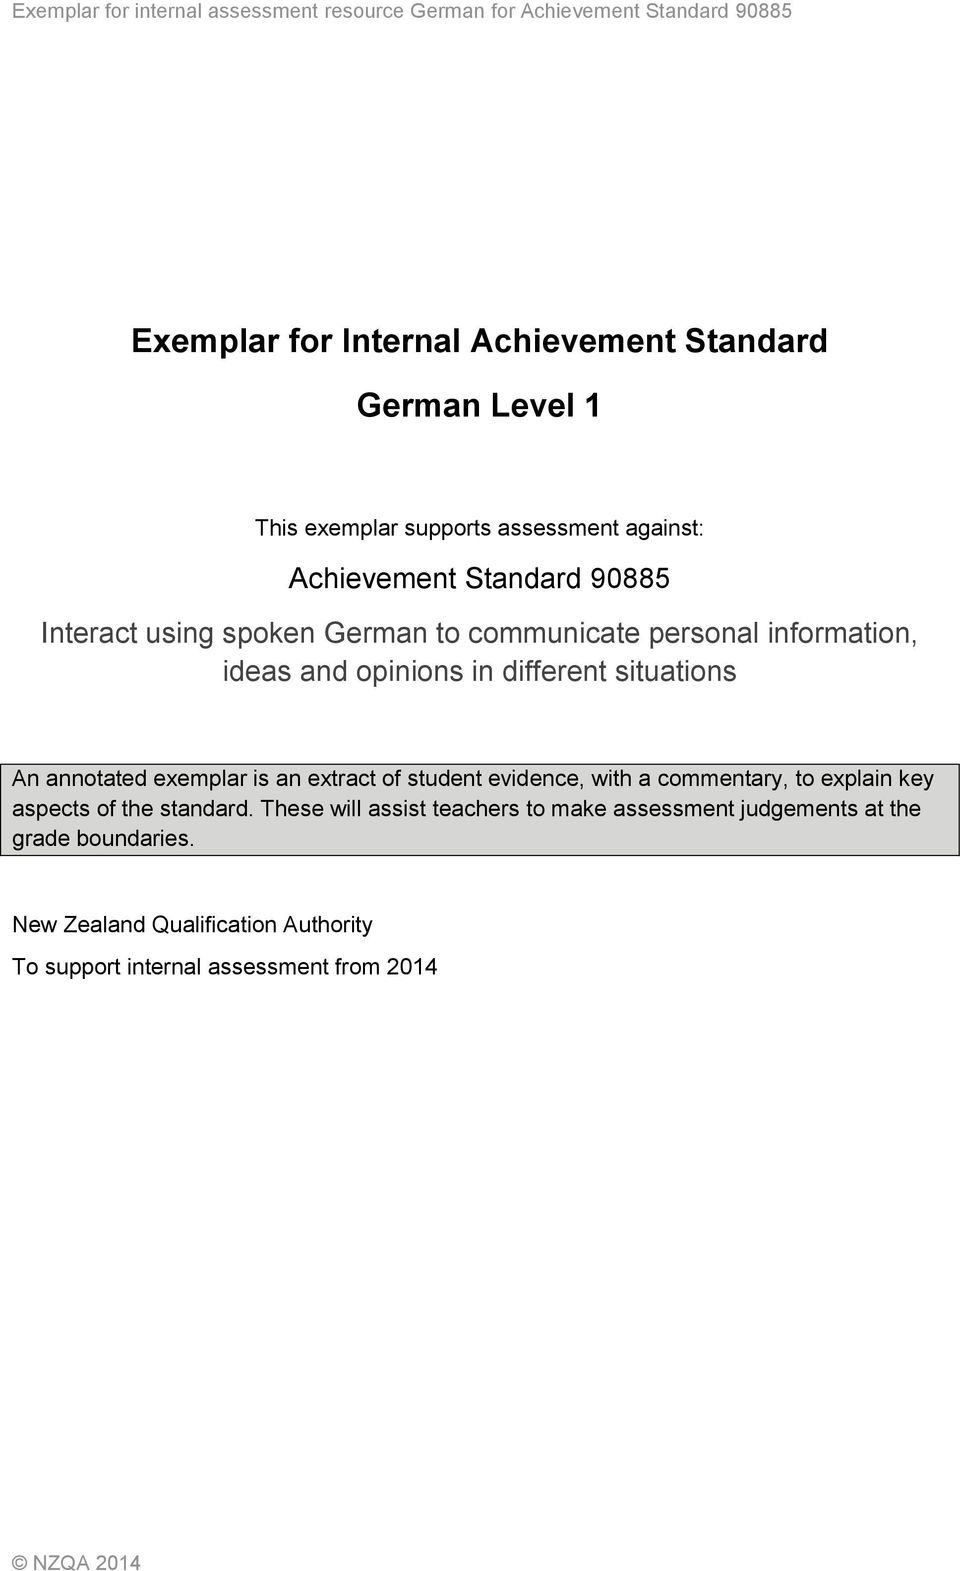 exemplar is an extract of student evidence, with a commentary, to explain key aspects of the standard.